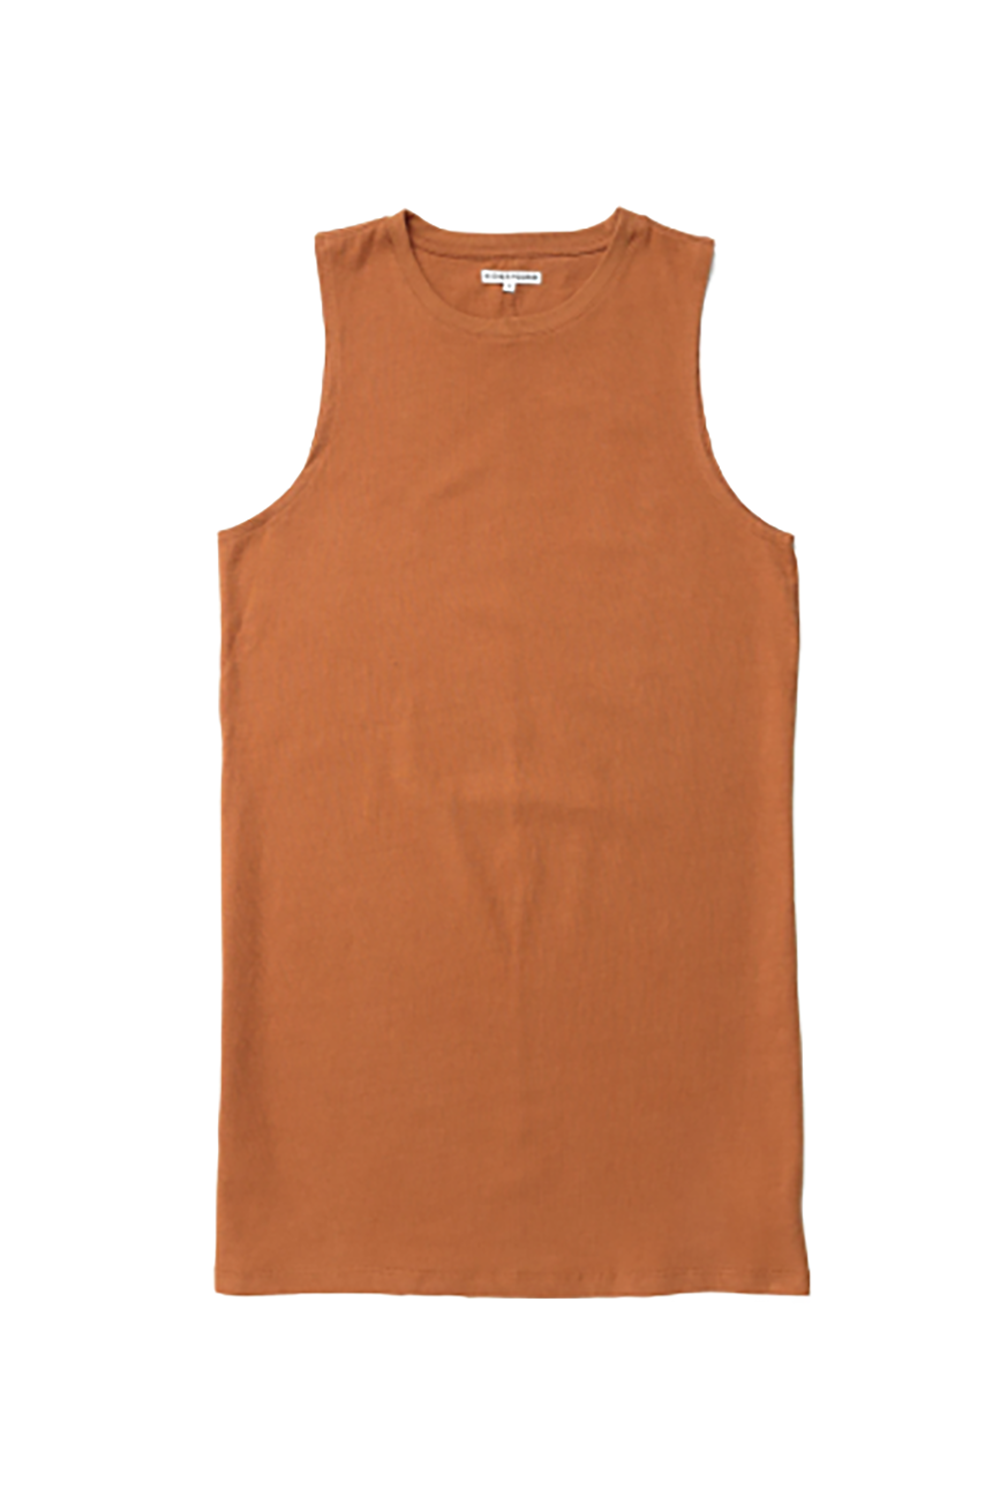 A Casual Tank Dress Richer Poorer $52.00 SHOP IT Richer Poorer's soft tank dress is the perfect lightweight option to throw on during the summer for errands, or as a cover up during that cruise she's been planning for months. It also comes in black, white, navy, and lilac.